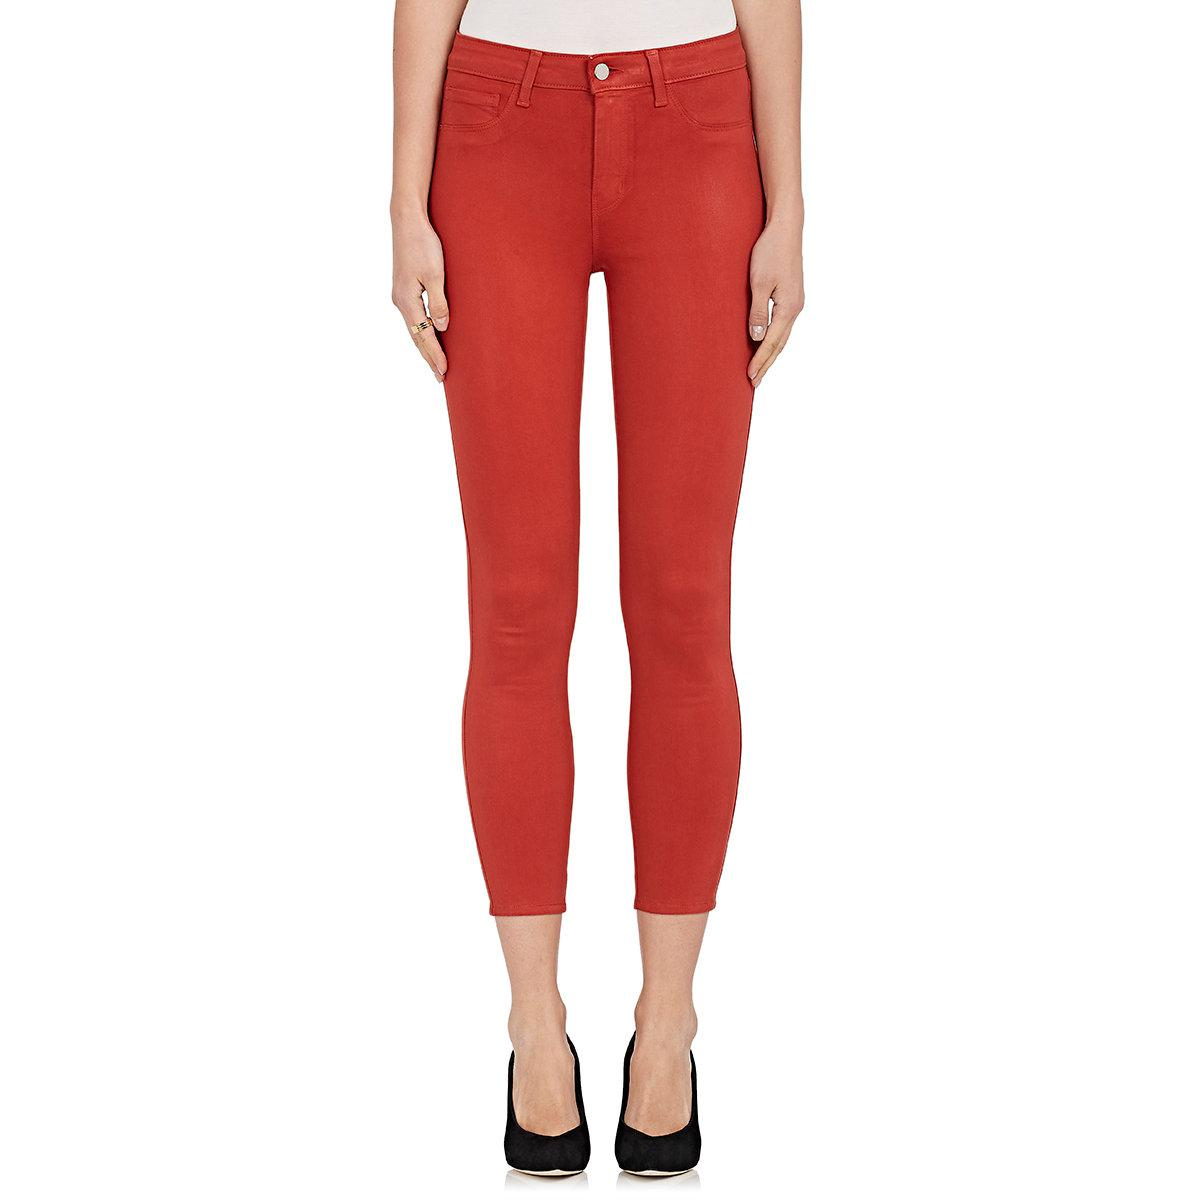 193dec6cba Lyst - L Agence Margot Coated Skinny Jeans in Red